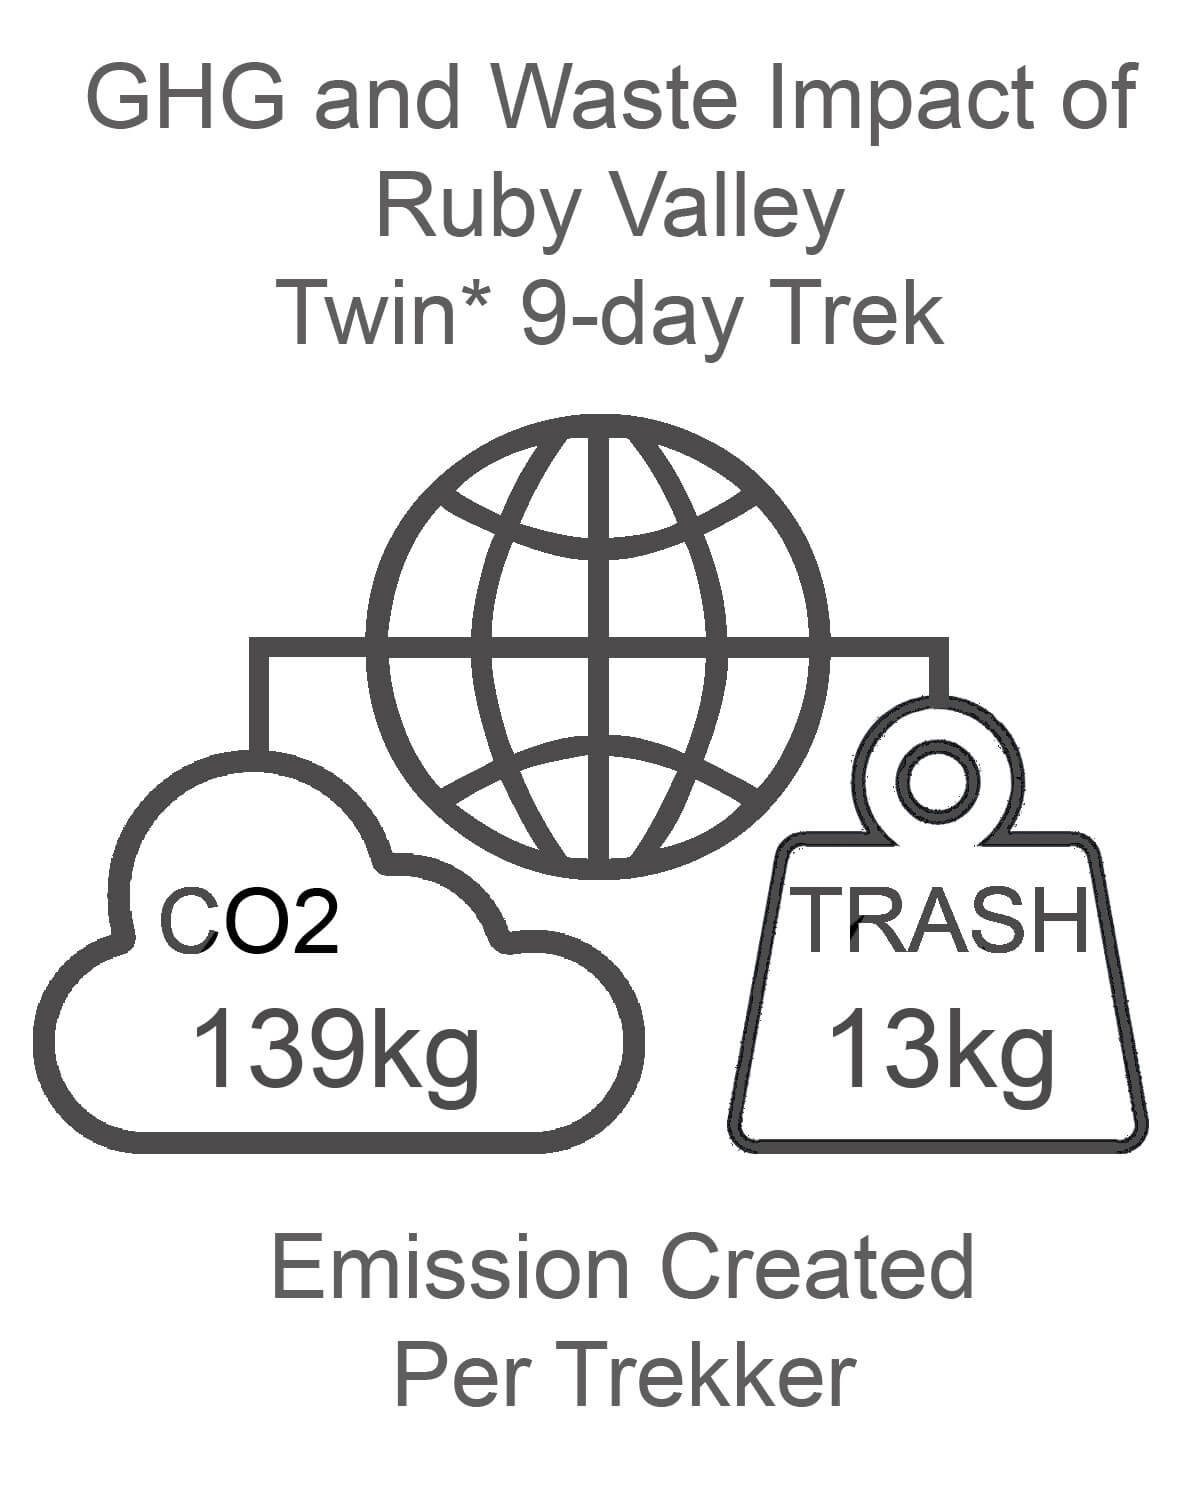 Ruby Valley GHG and Waste Impact TWIN